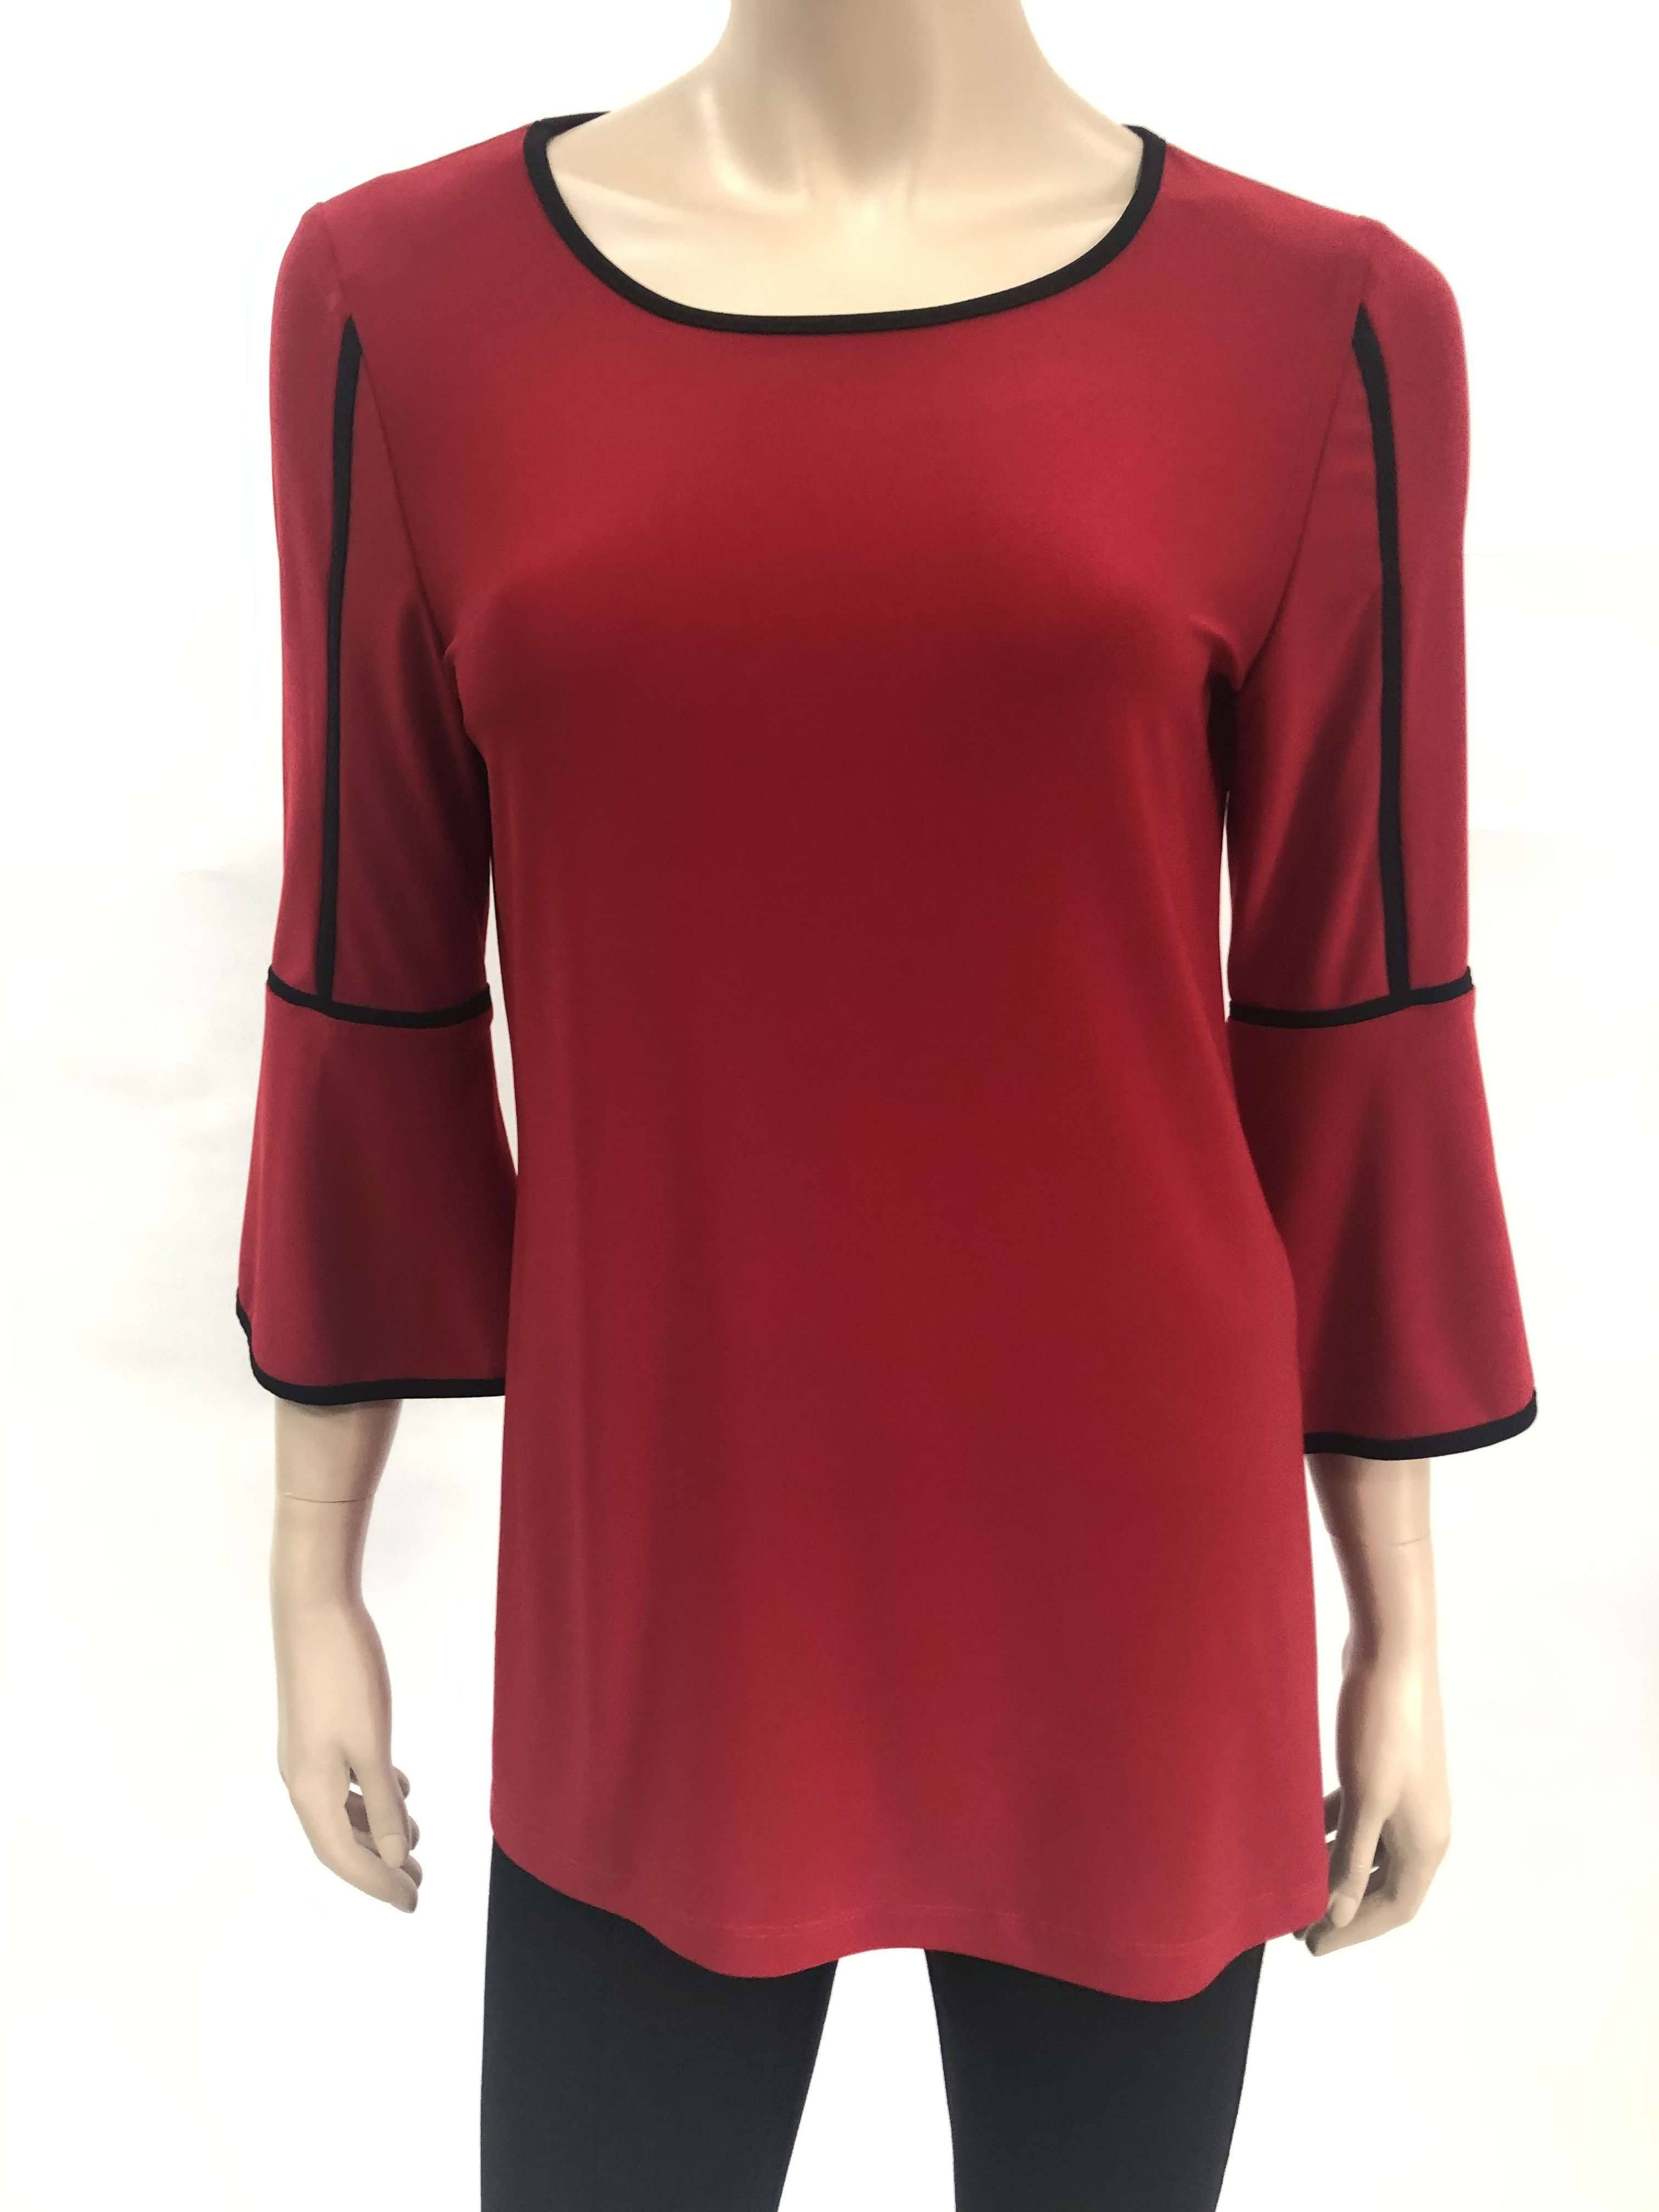 Women's Red Tops on Sale XLarge Size - Made in Canada - Yvonne Marie - Yvonne Marie